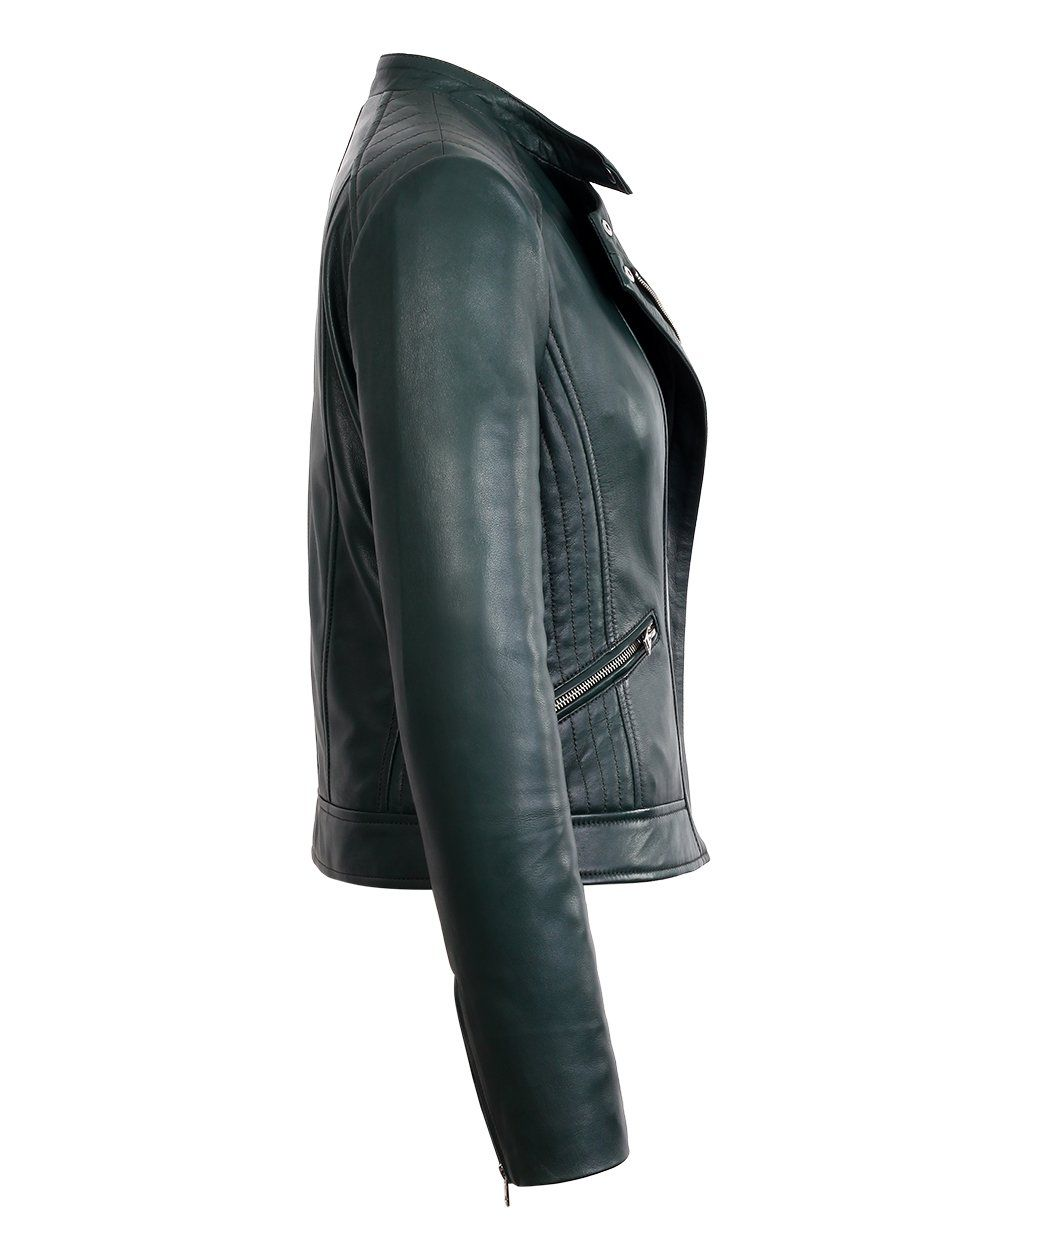 Womens Green Quilted Shoulder Moto Fashion Lambskin Real Leather Jacket Large Green See This Great Product This Real Leather Jacket Leather Jacket Jackets [ 1250 x 1049 Pixel ]